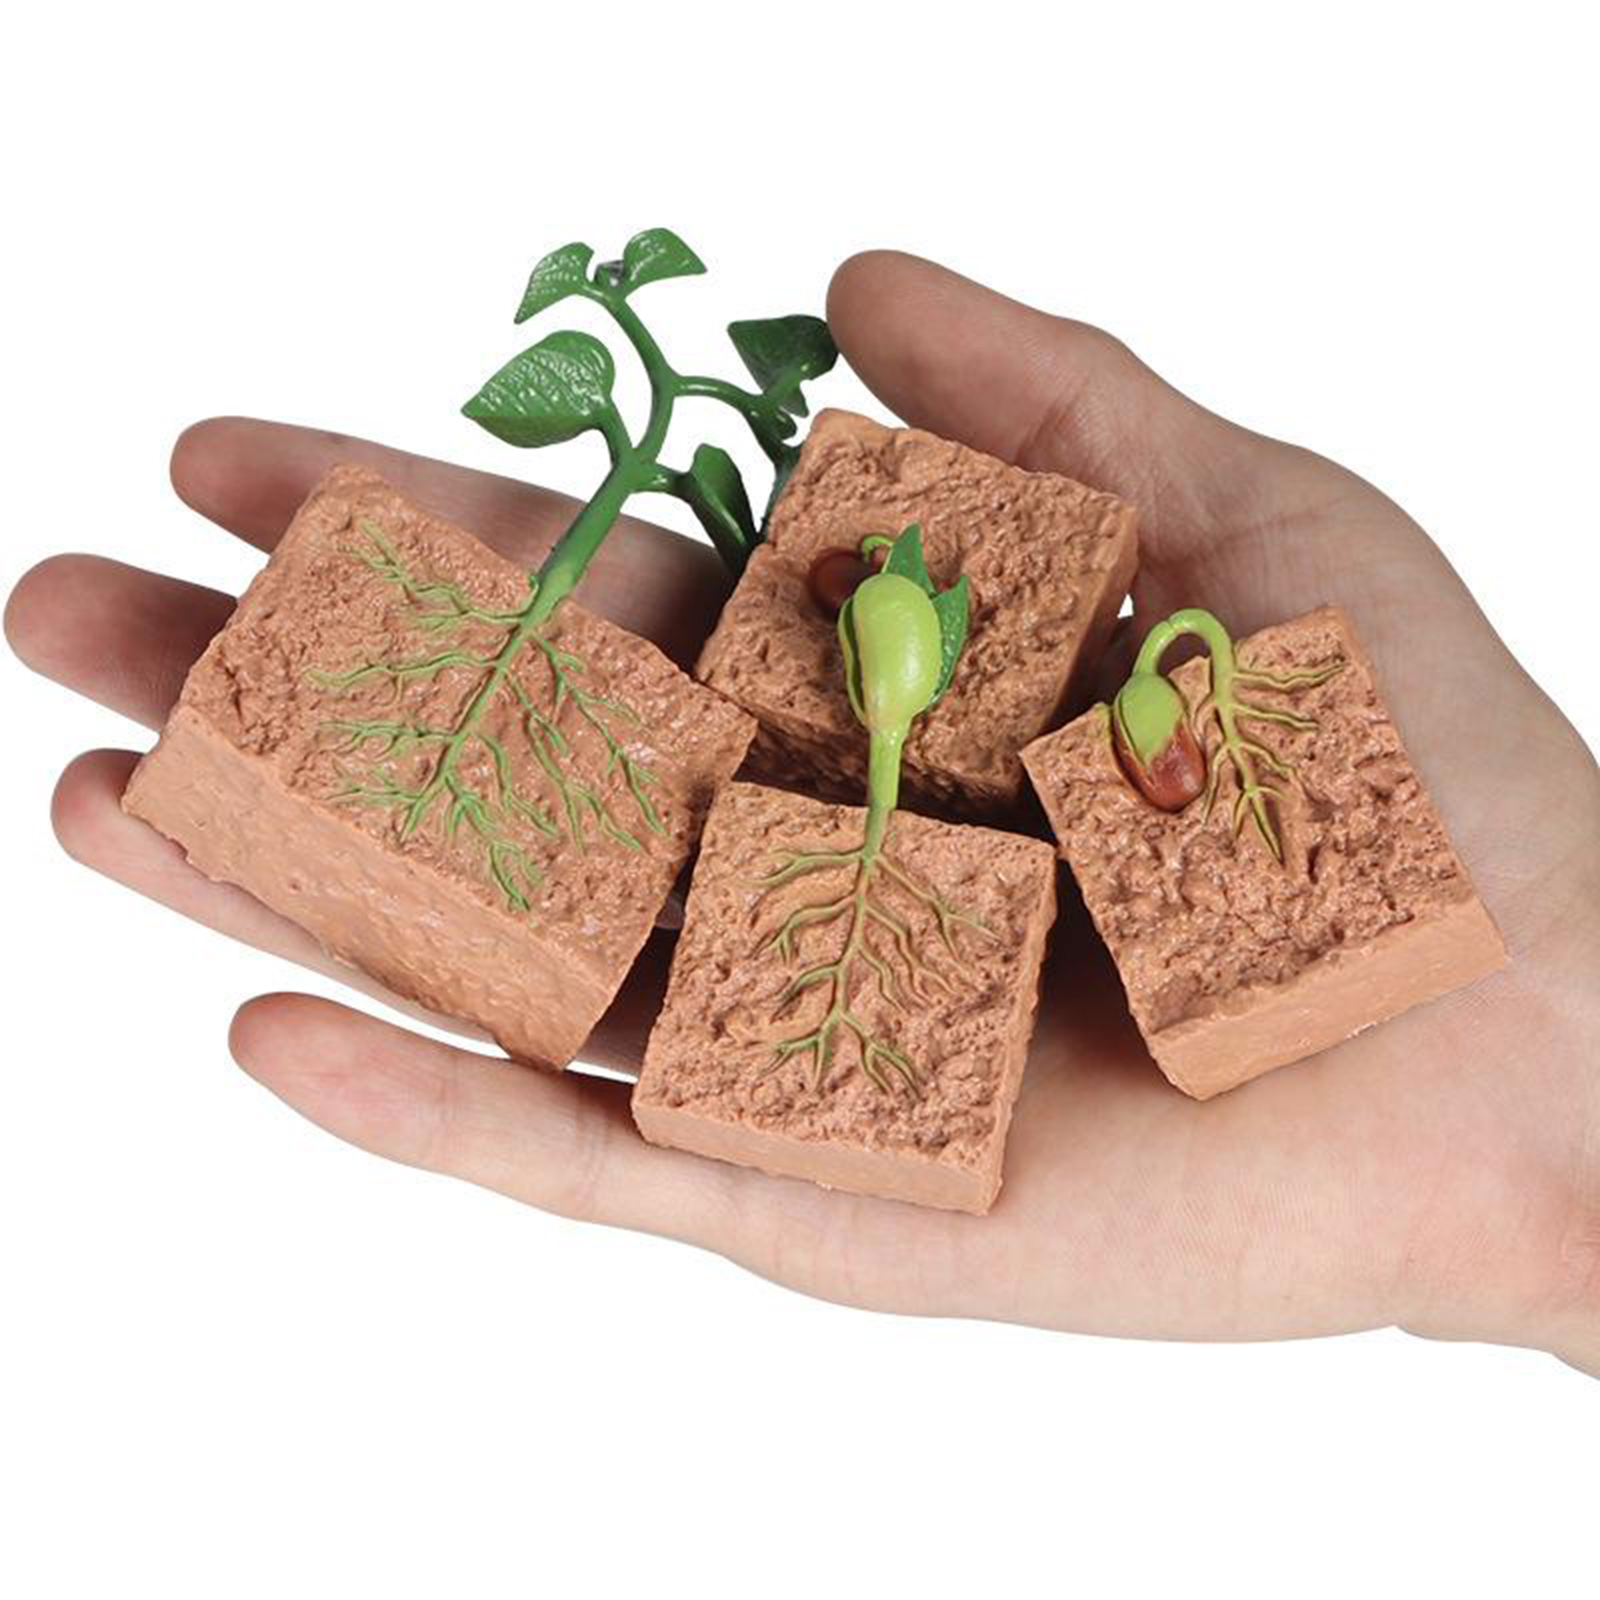 Kids Plant Seeds Growth Life Cycle Playset Cognitive Toys Teaching Aids 2